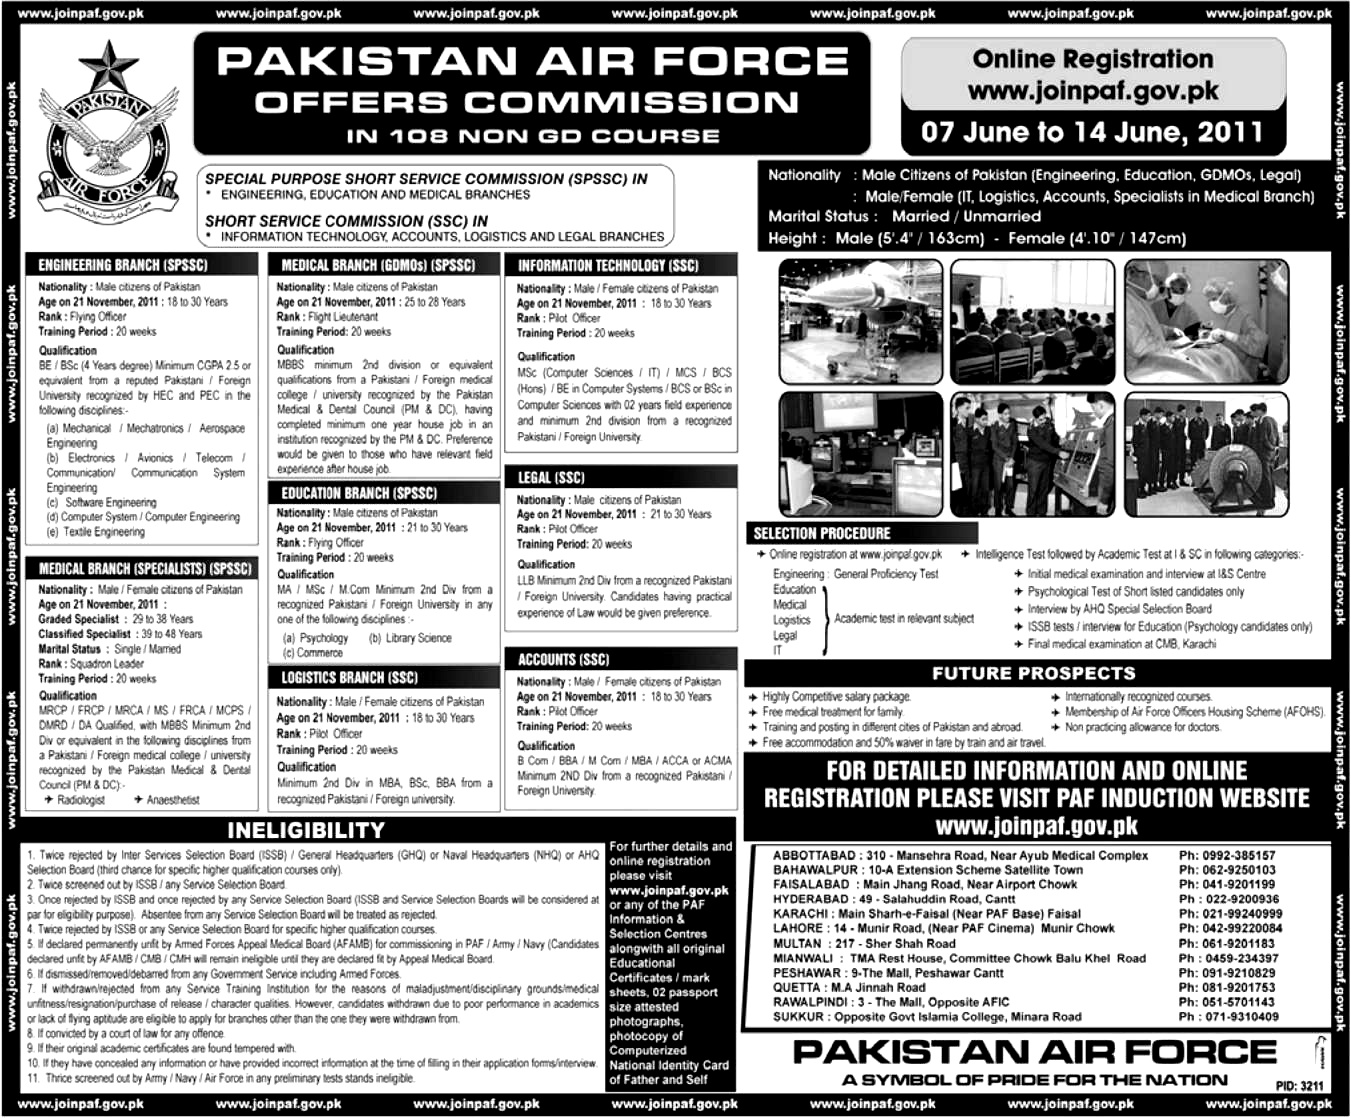 Pakistan Air Force 2014